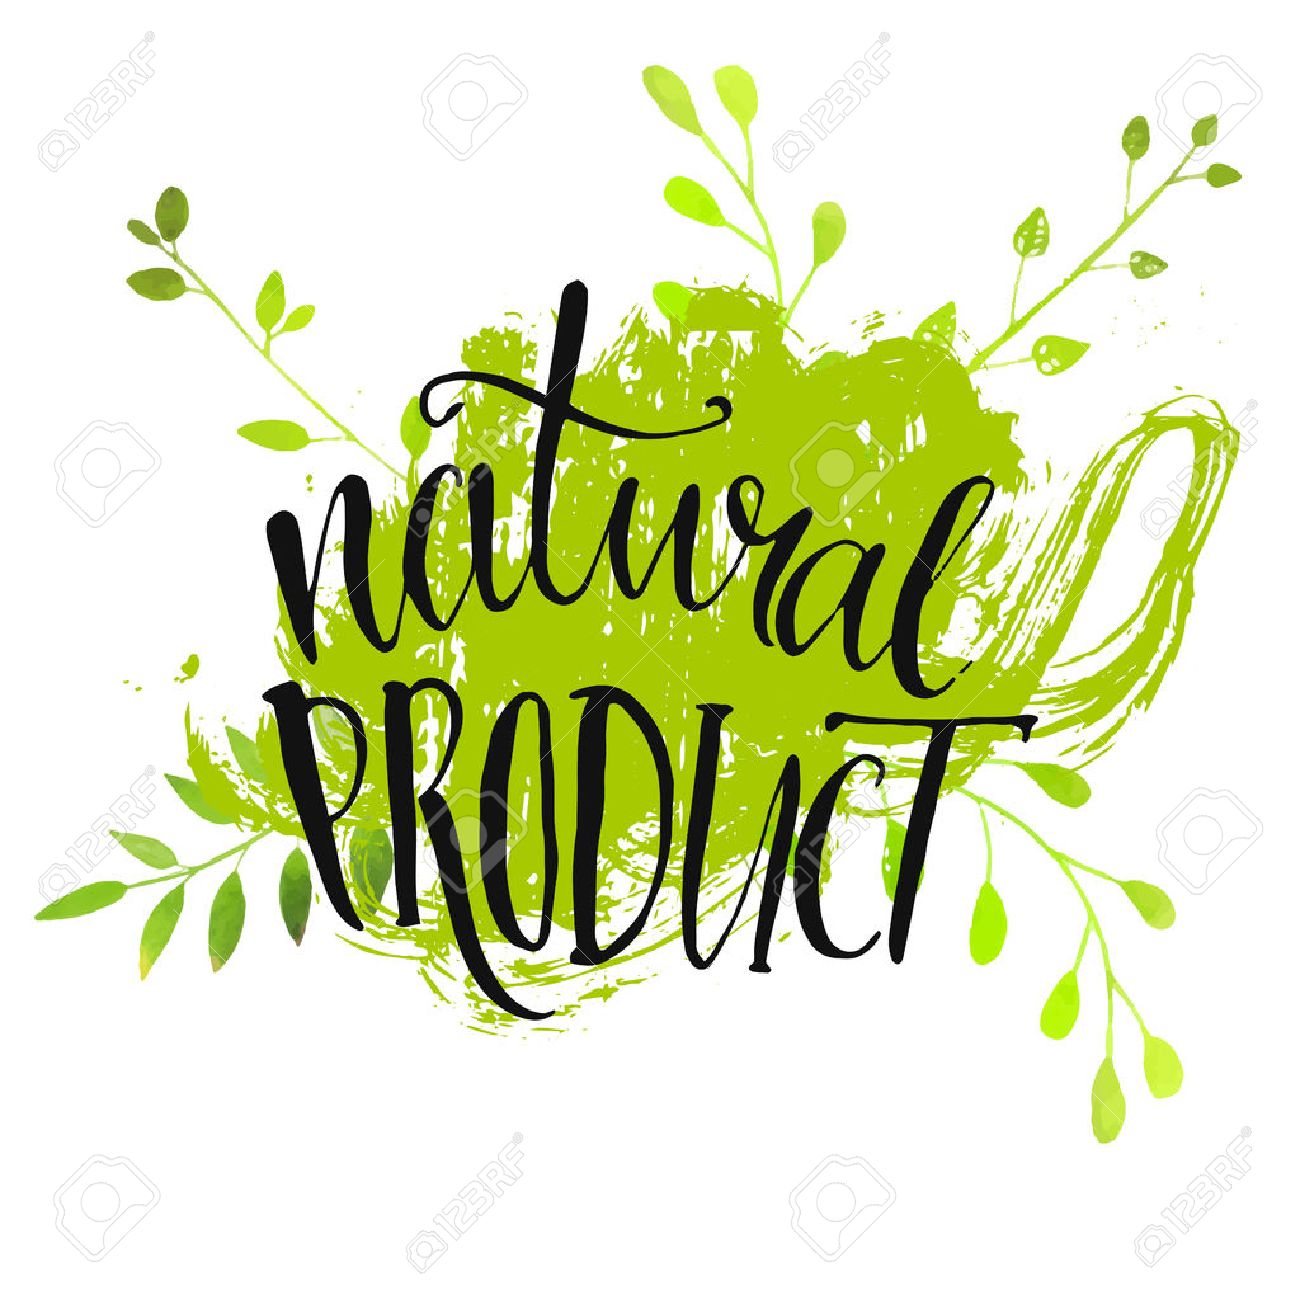 Natural product sticker - handwritten modern calligraphy on grunge green paint strokes. Eco friendly concept for stickers, banners, cards, advertisement. - 42498708